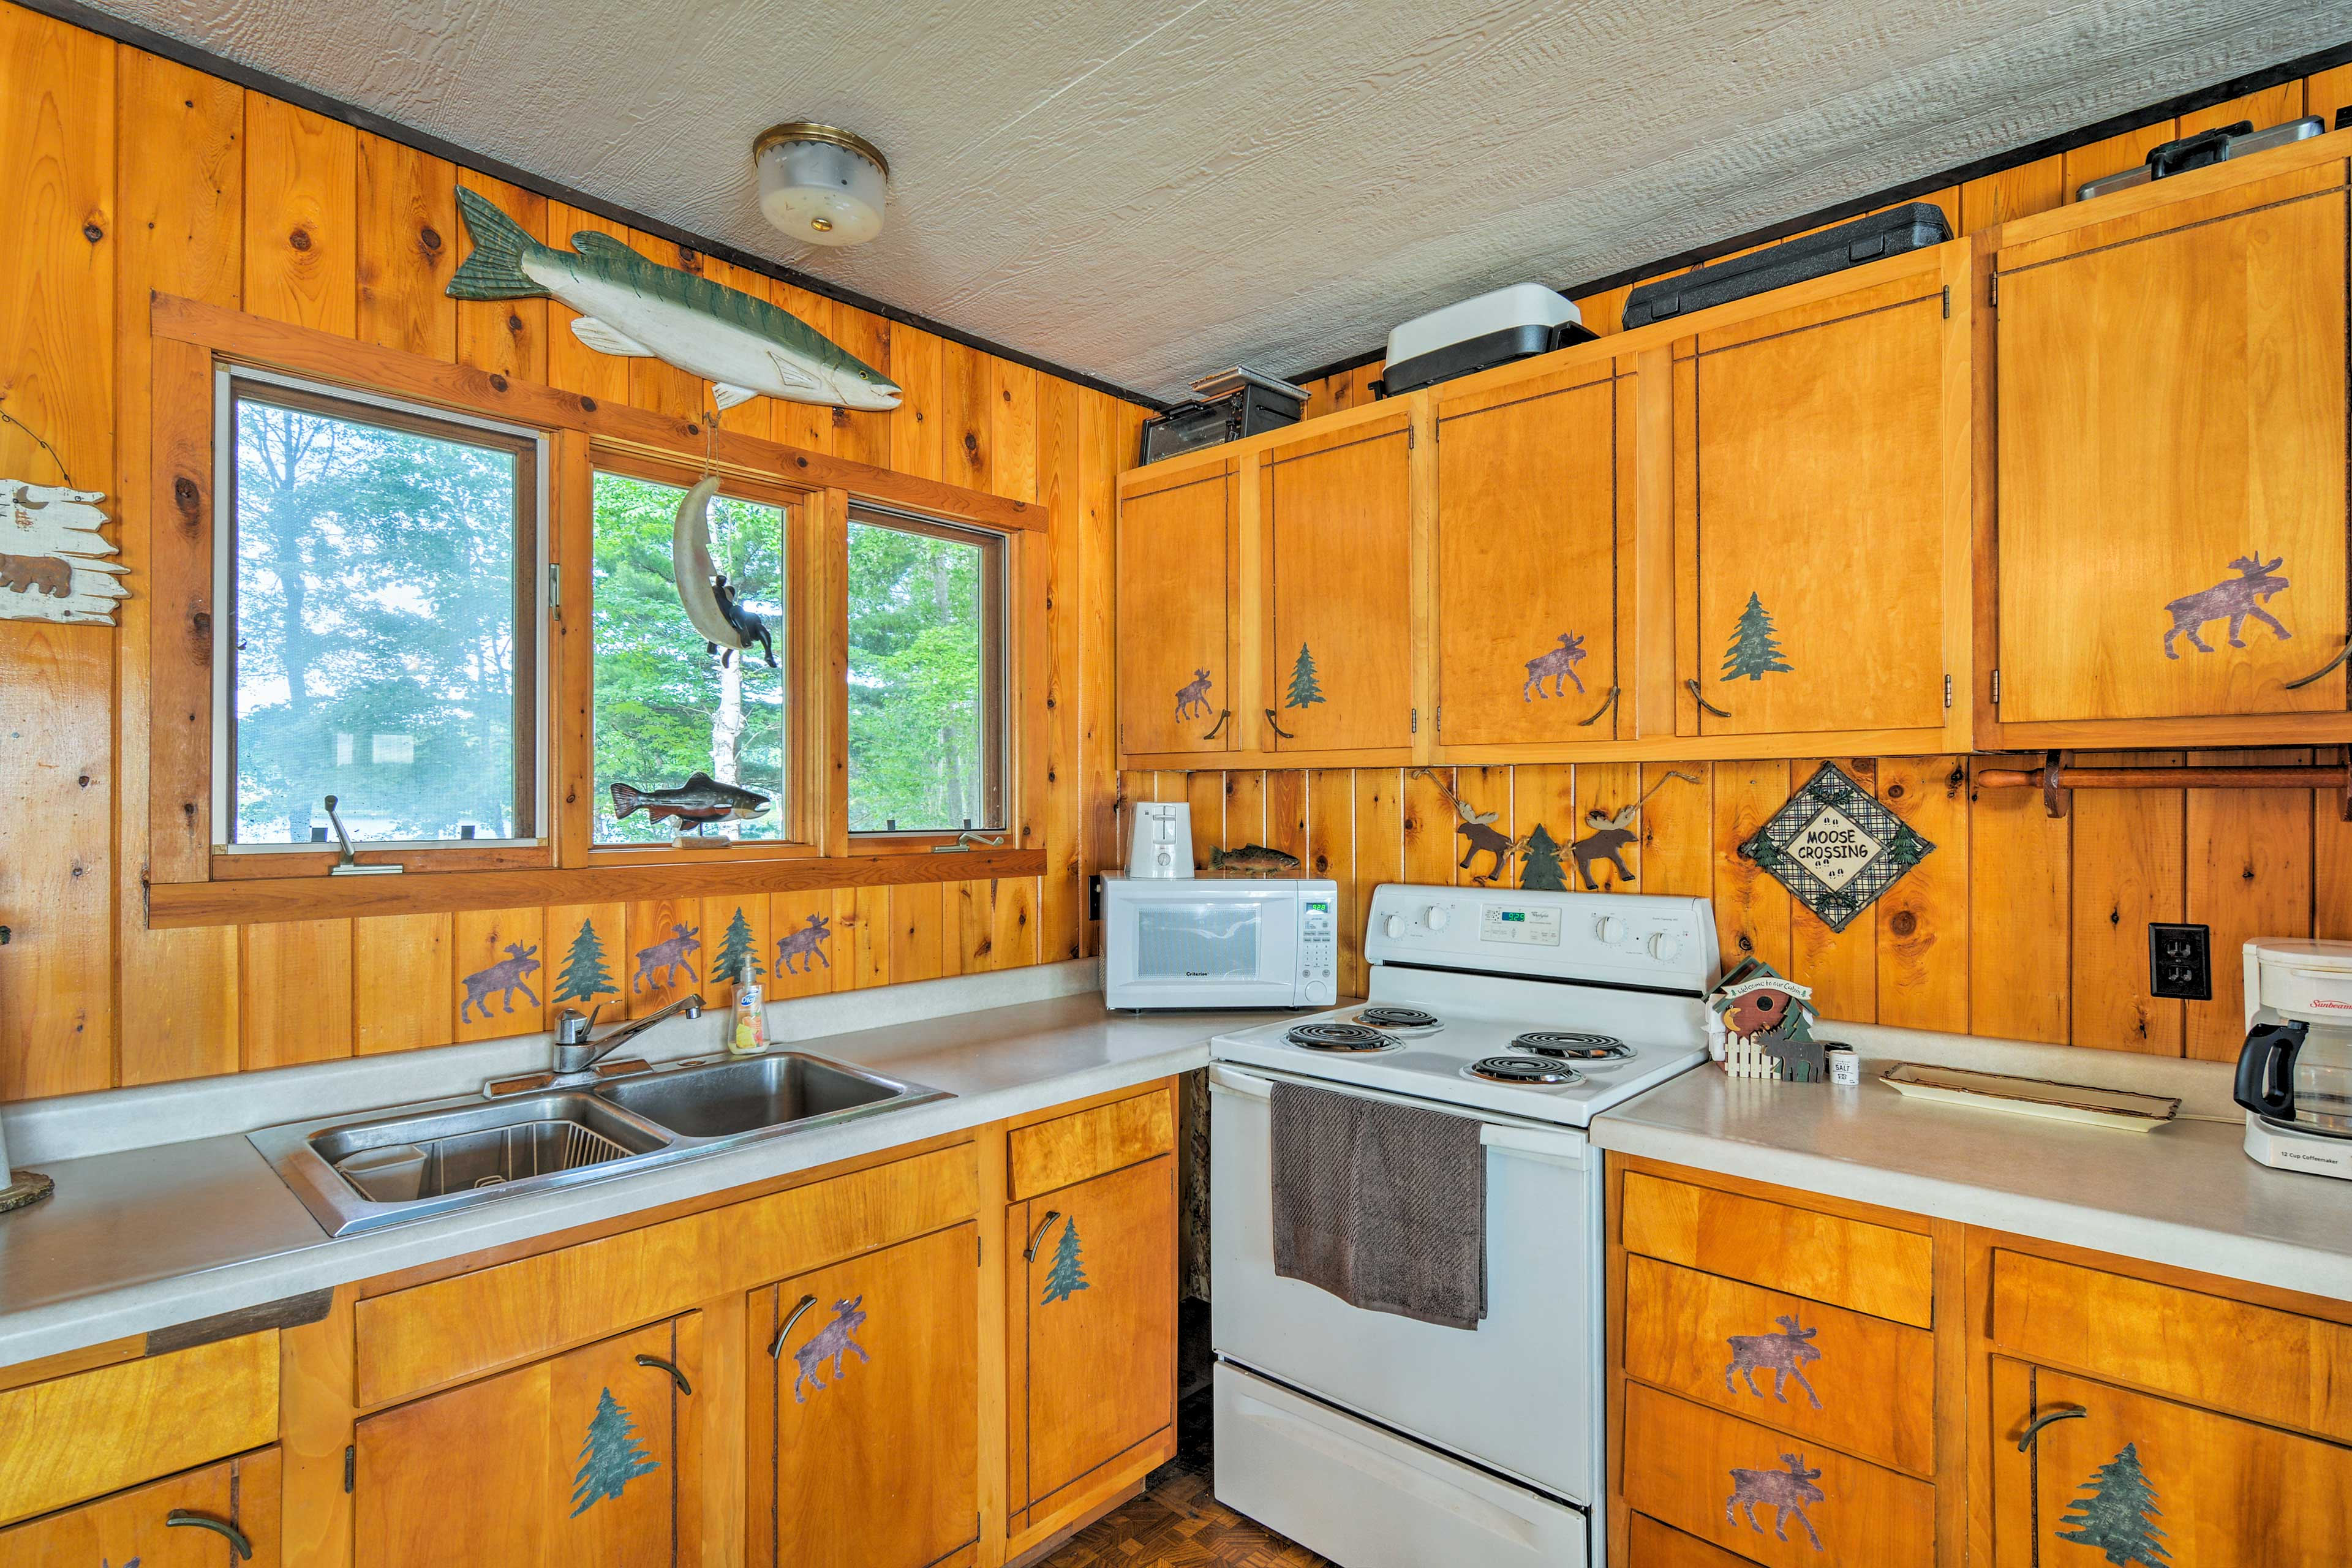 Wooden cabinets provide storage space and hold cooking utensils.